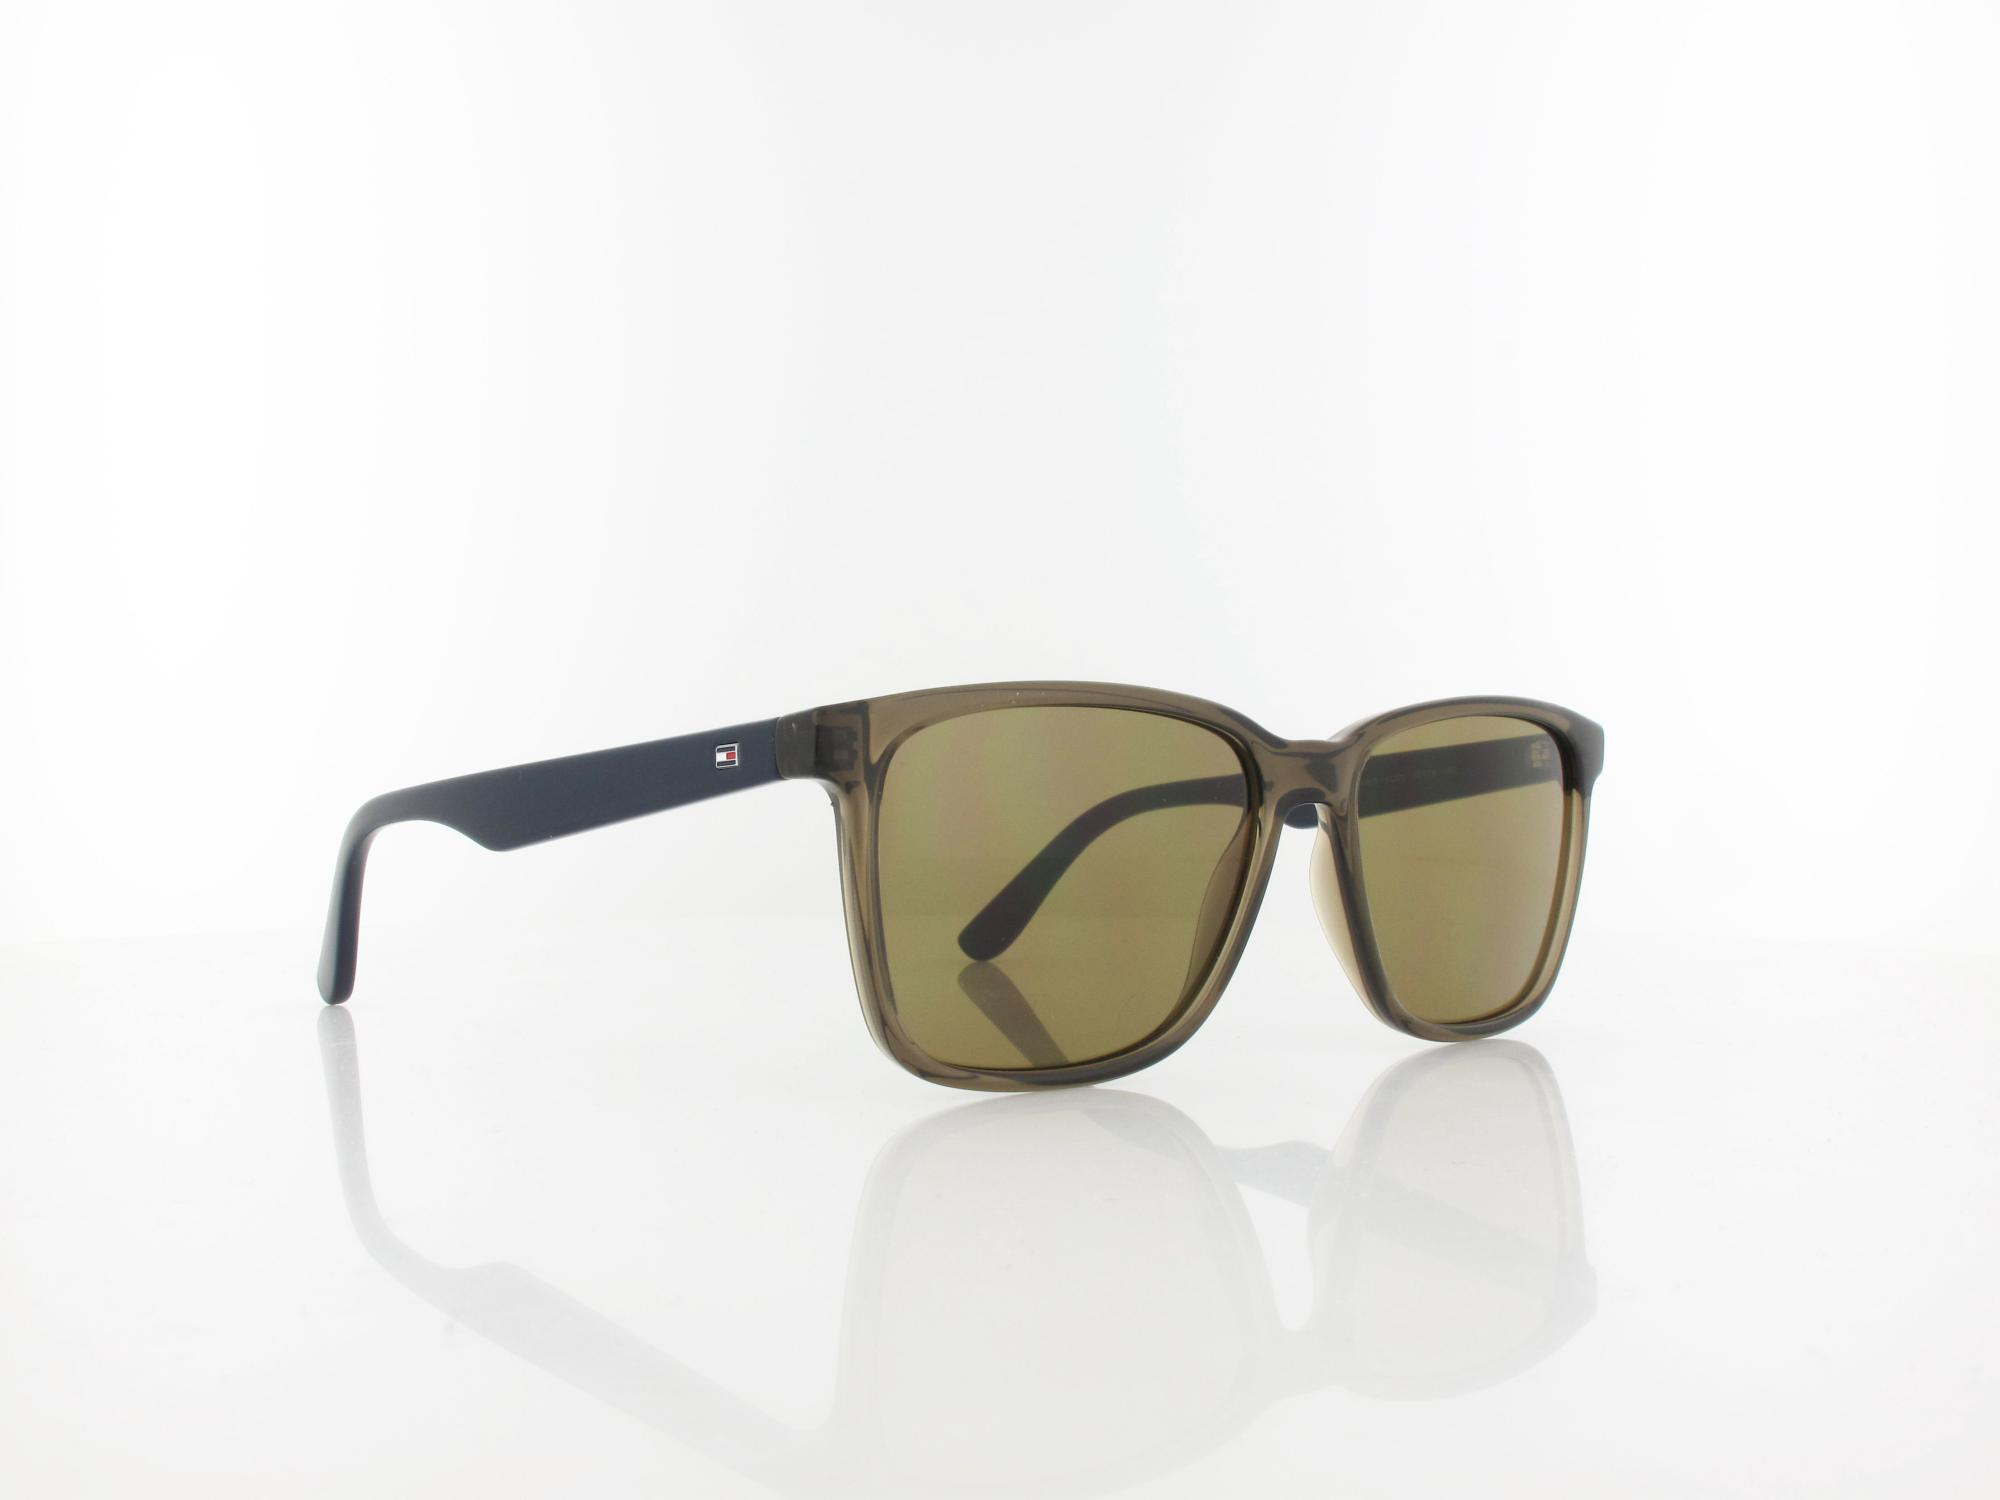 Tommy Hilfiger | TH 1486/S 4C3/70 55 | olive / brown